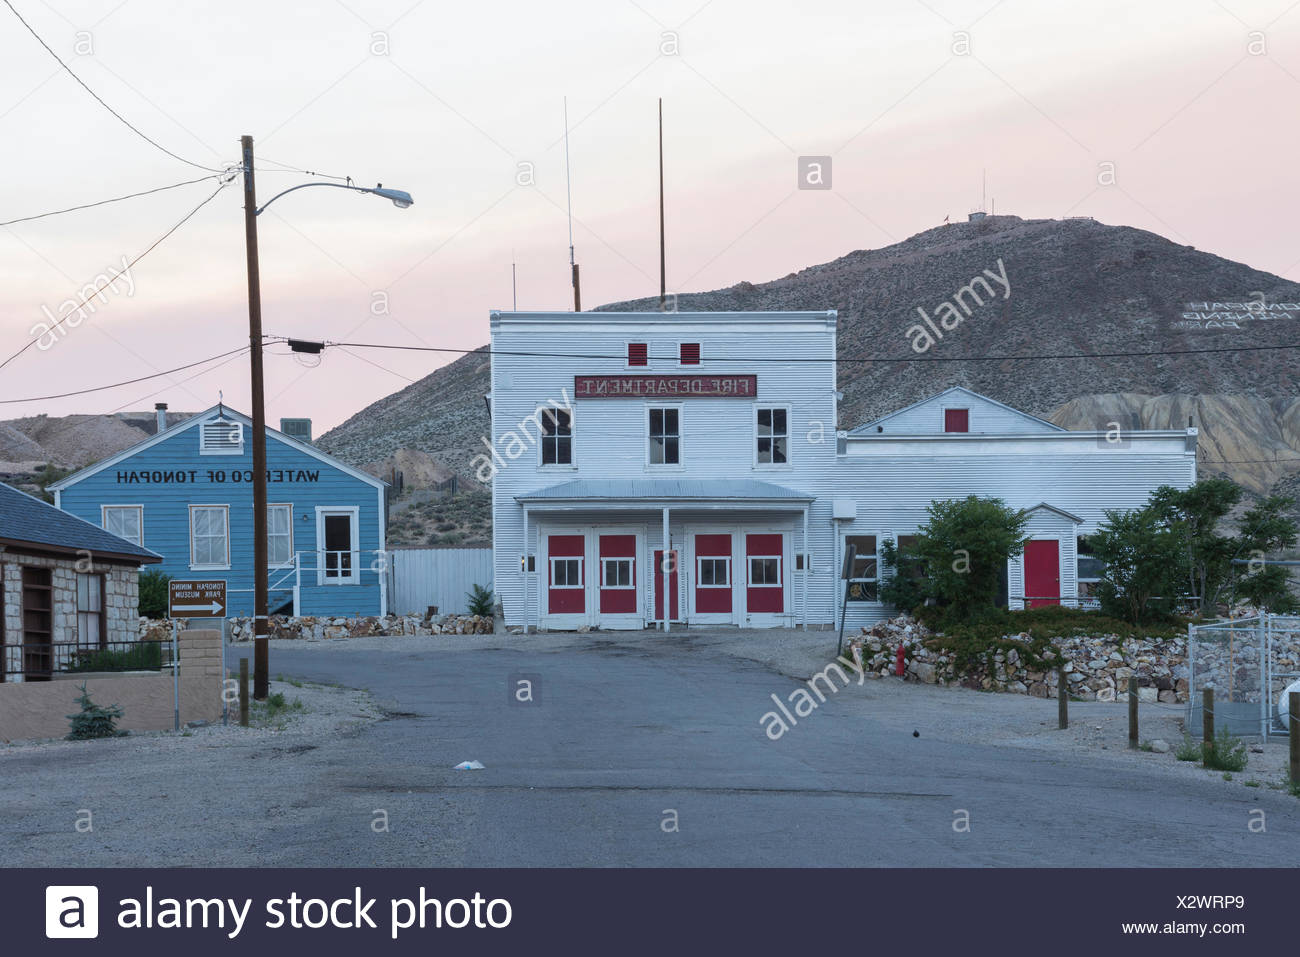 Nevada, Mineral County, Tonopah, Fire Department - Stock Image